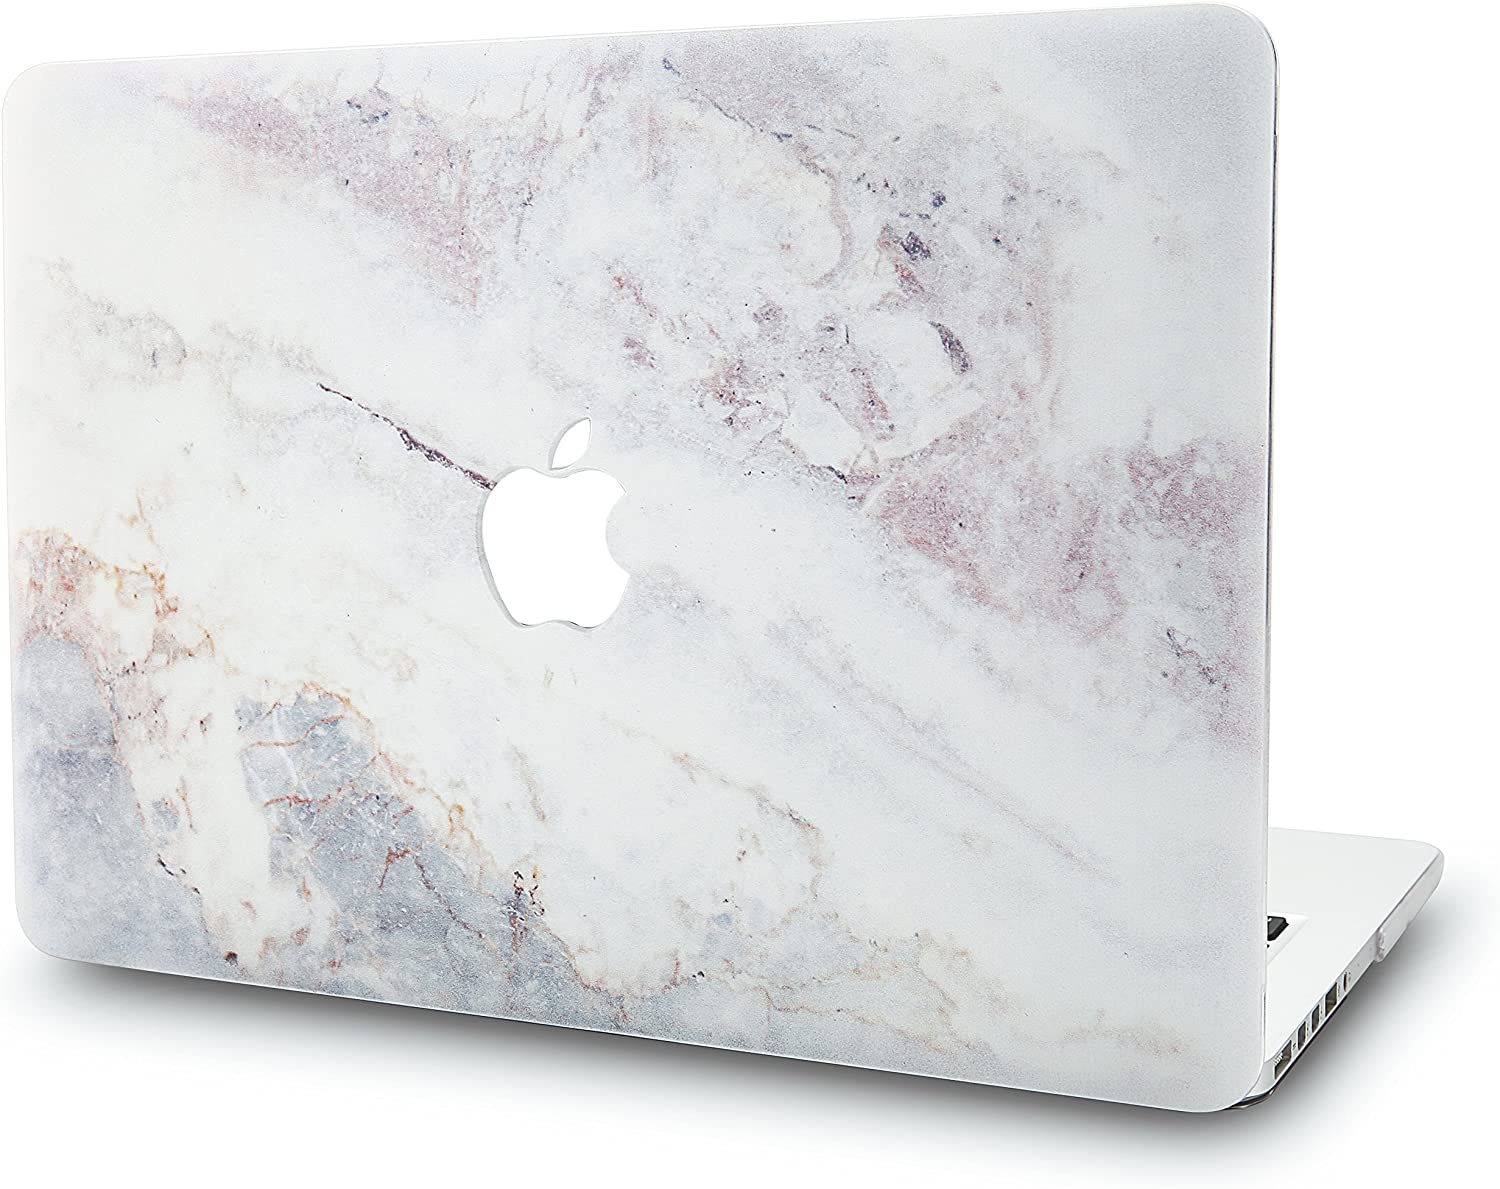 "KECC Laptop Case for Old MacBook Pro 15"" Retina (-2015) Plastic Case Hard Shell Cover A1398 (White Marble 2)"